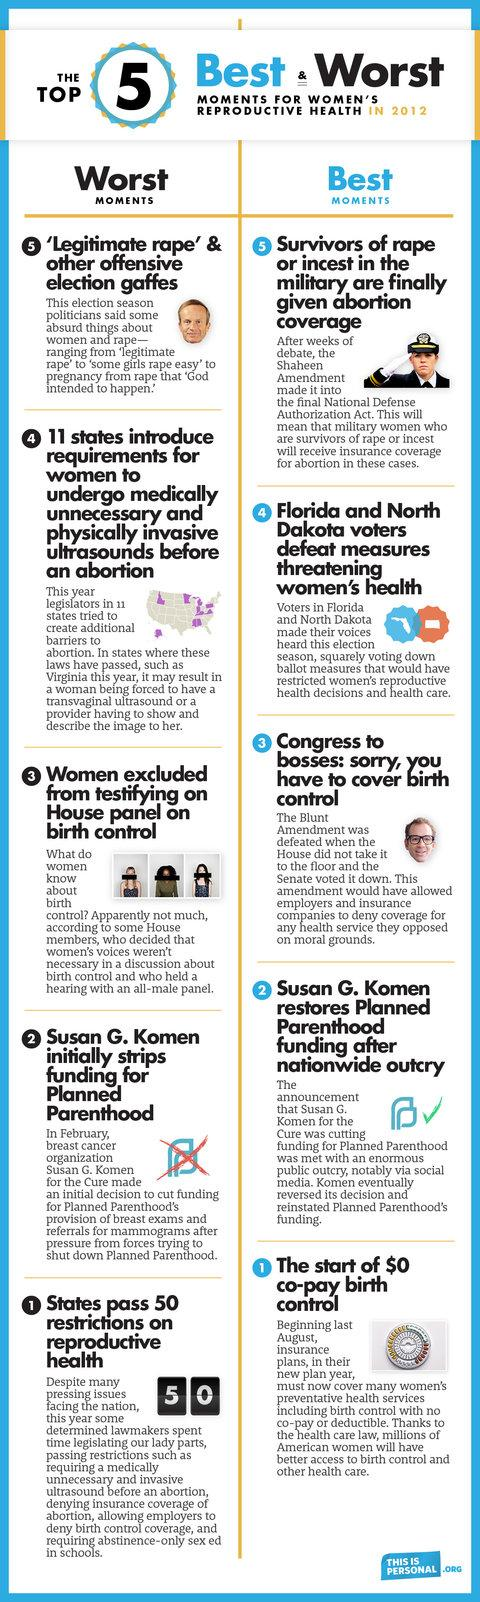 Best and Worst Moments for Women's Reproduction Health in 2012